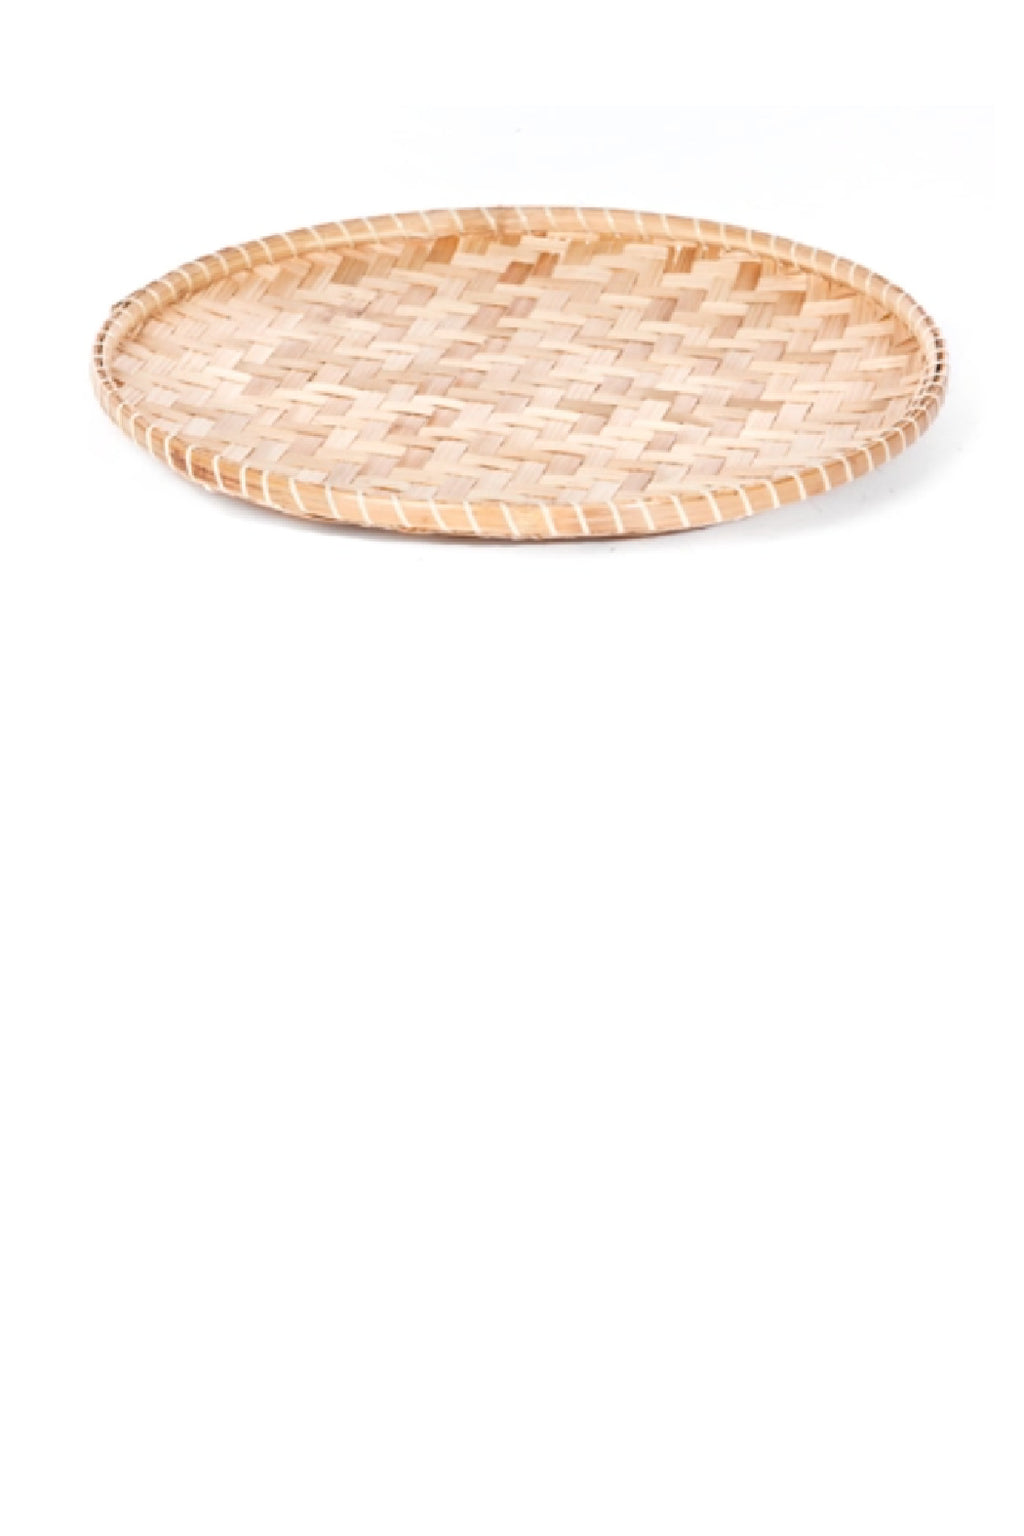 Willow Group Round Bamboo Tray - 11""